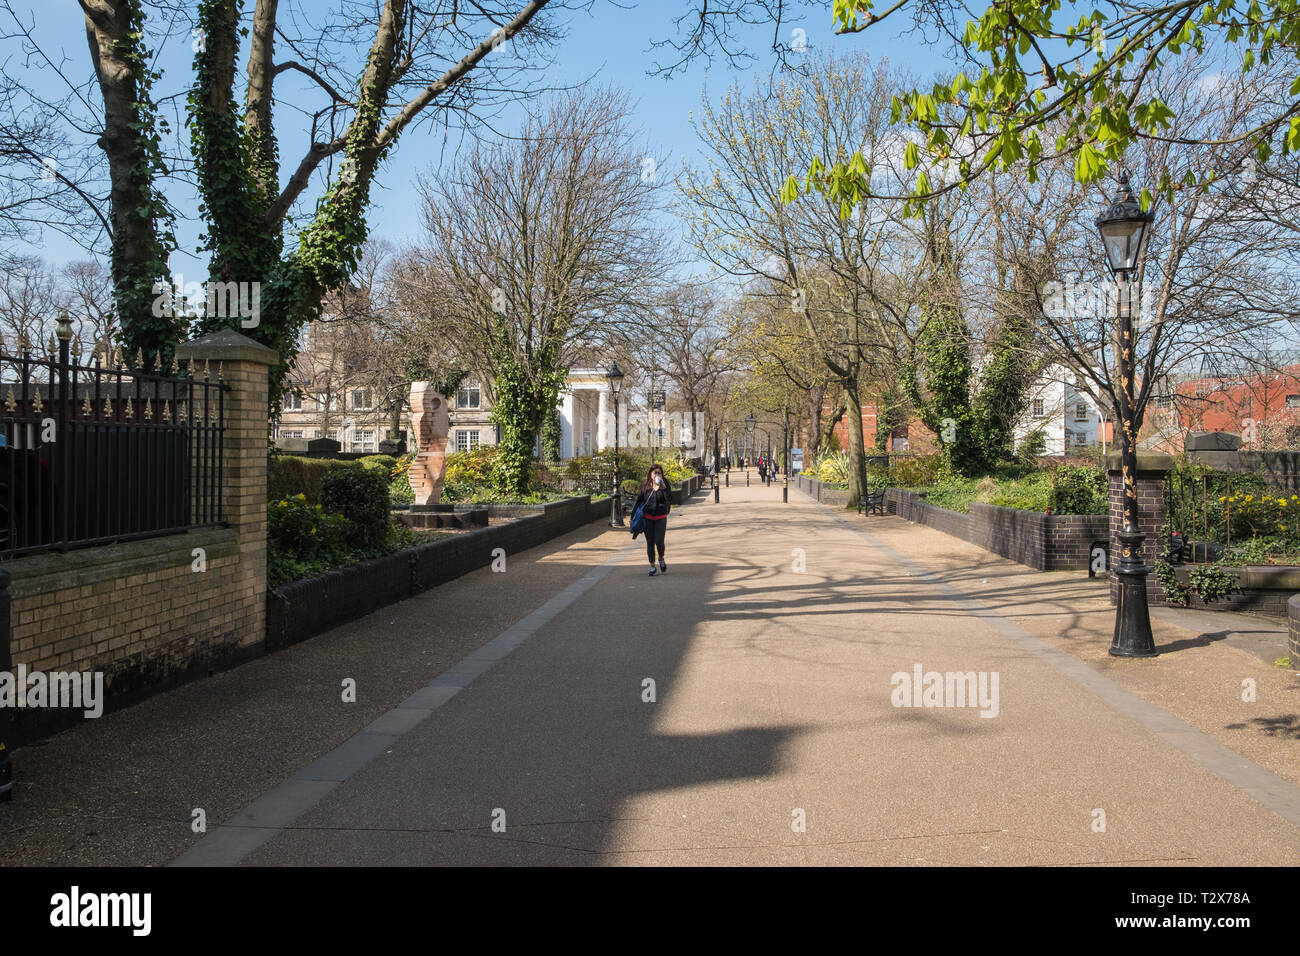 New Walk pedestrian walkway in Leicester City Centre - Stock Image